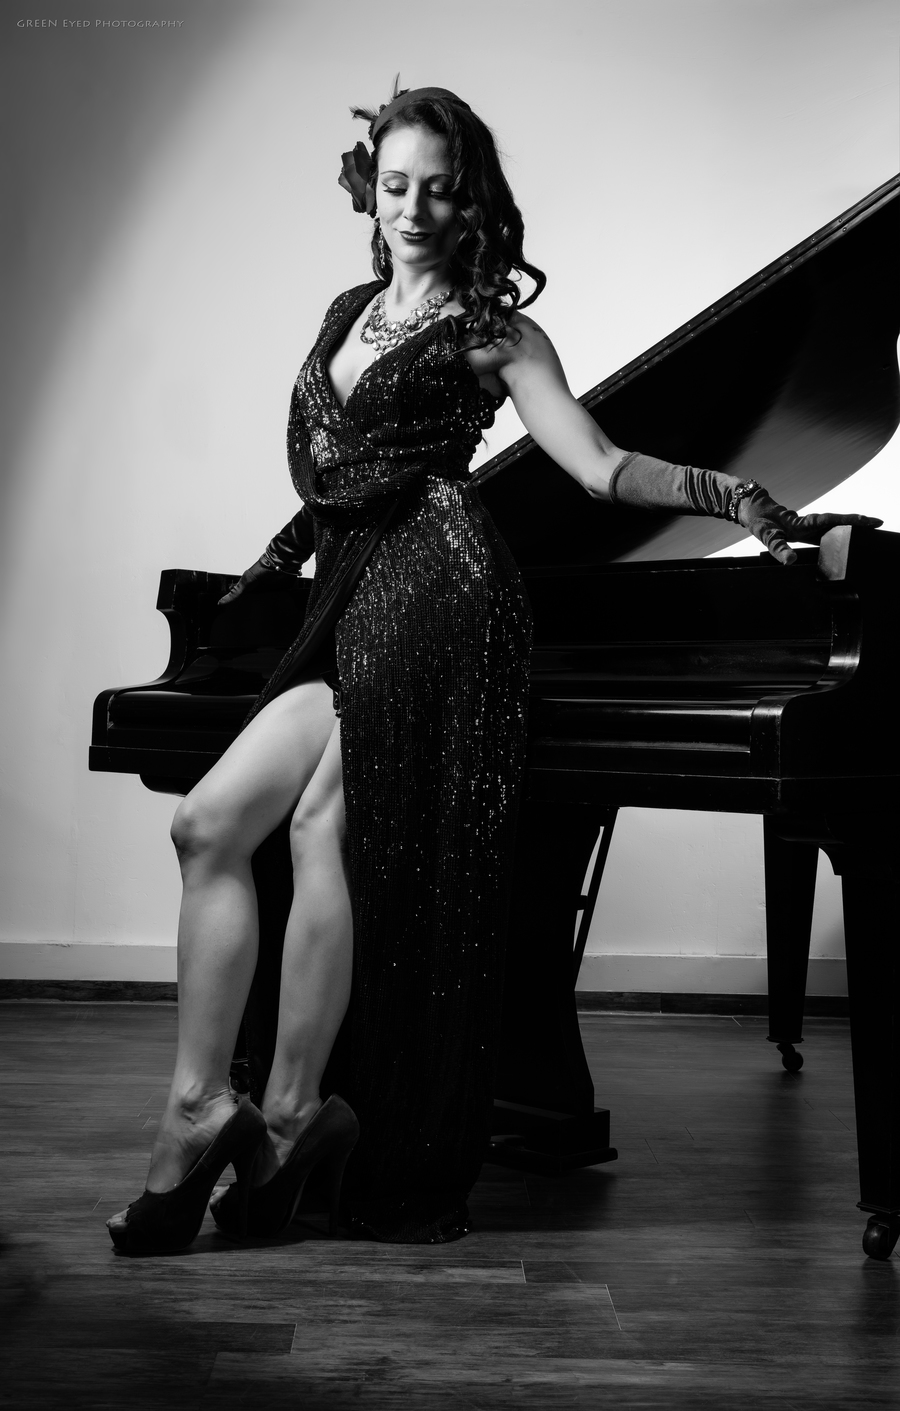 Baby grand / Photography by Green Eyed Photography, Model Evelyn Wood, Post processing by Green Eyed Photography, Taken at Green Eyed Photography / Uploaded 11th October 2021 @ 01:37 PM